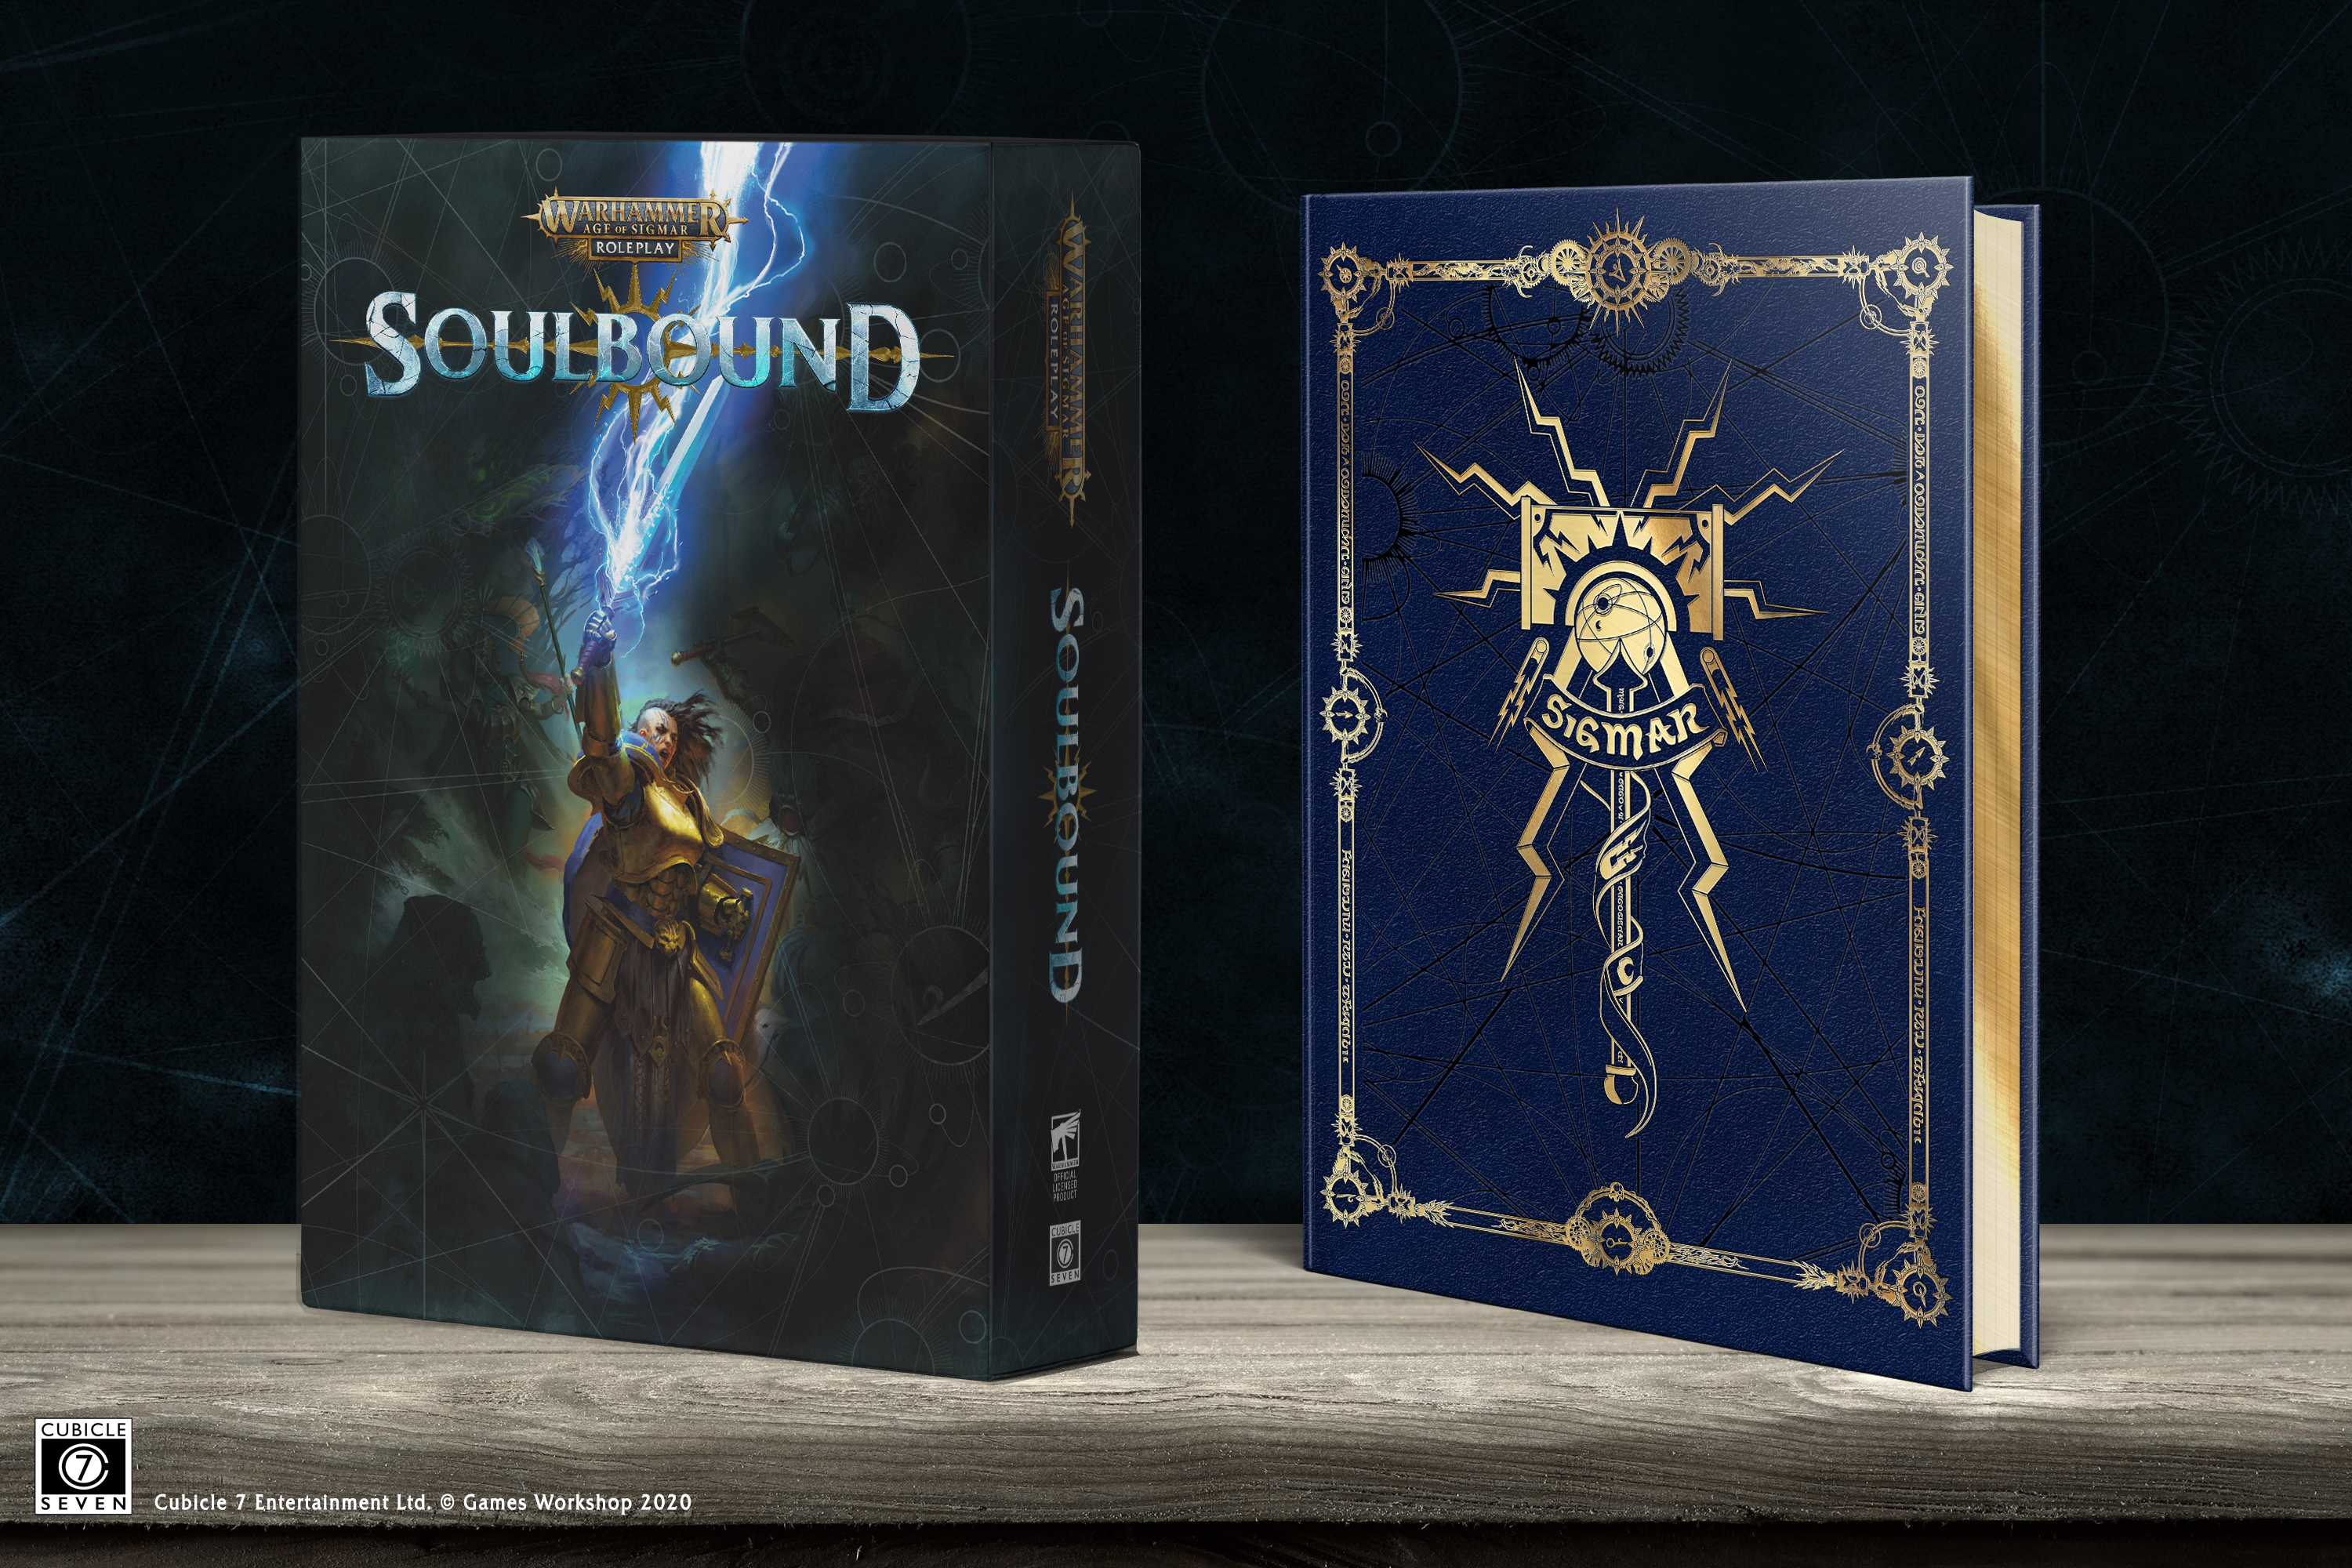 Warhammer Age of Sigmar: Soulbound Rulebook Collector's Edition